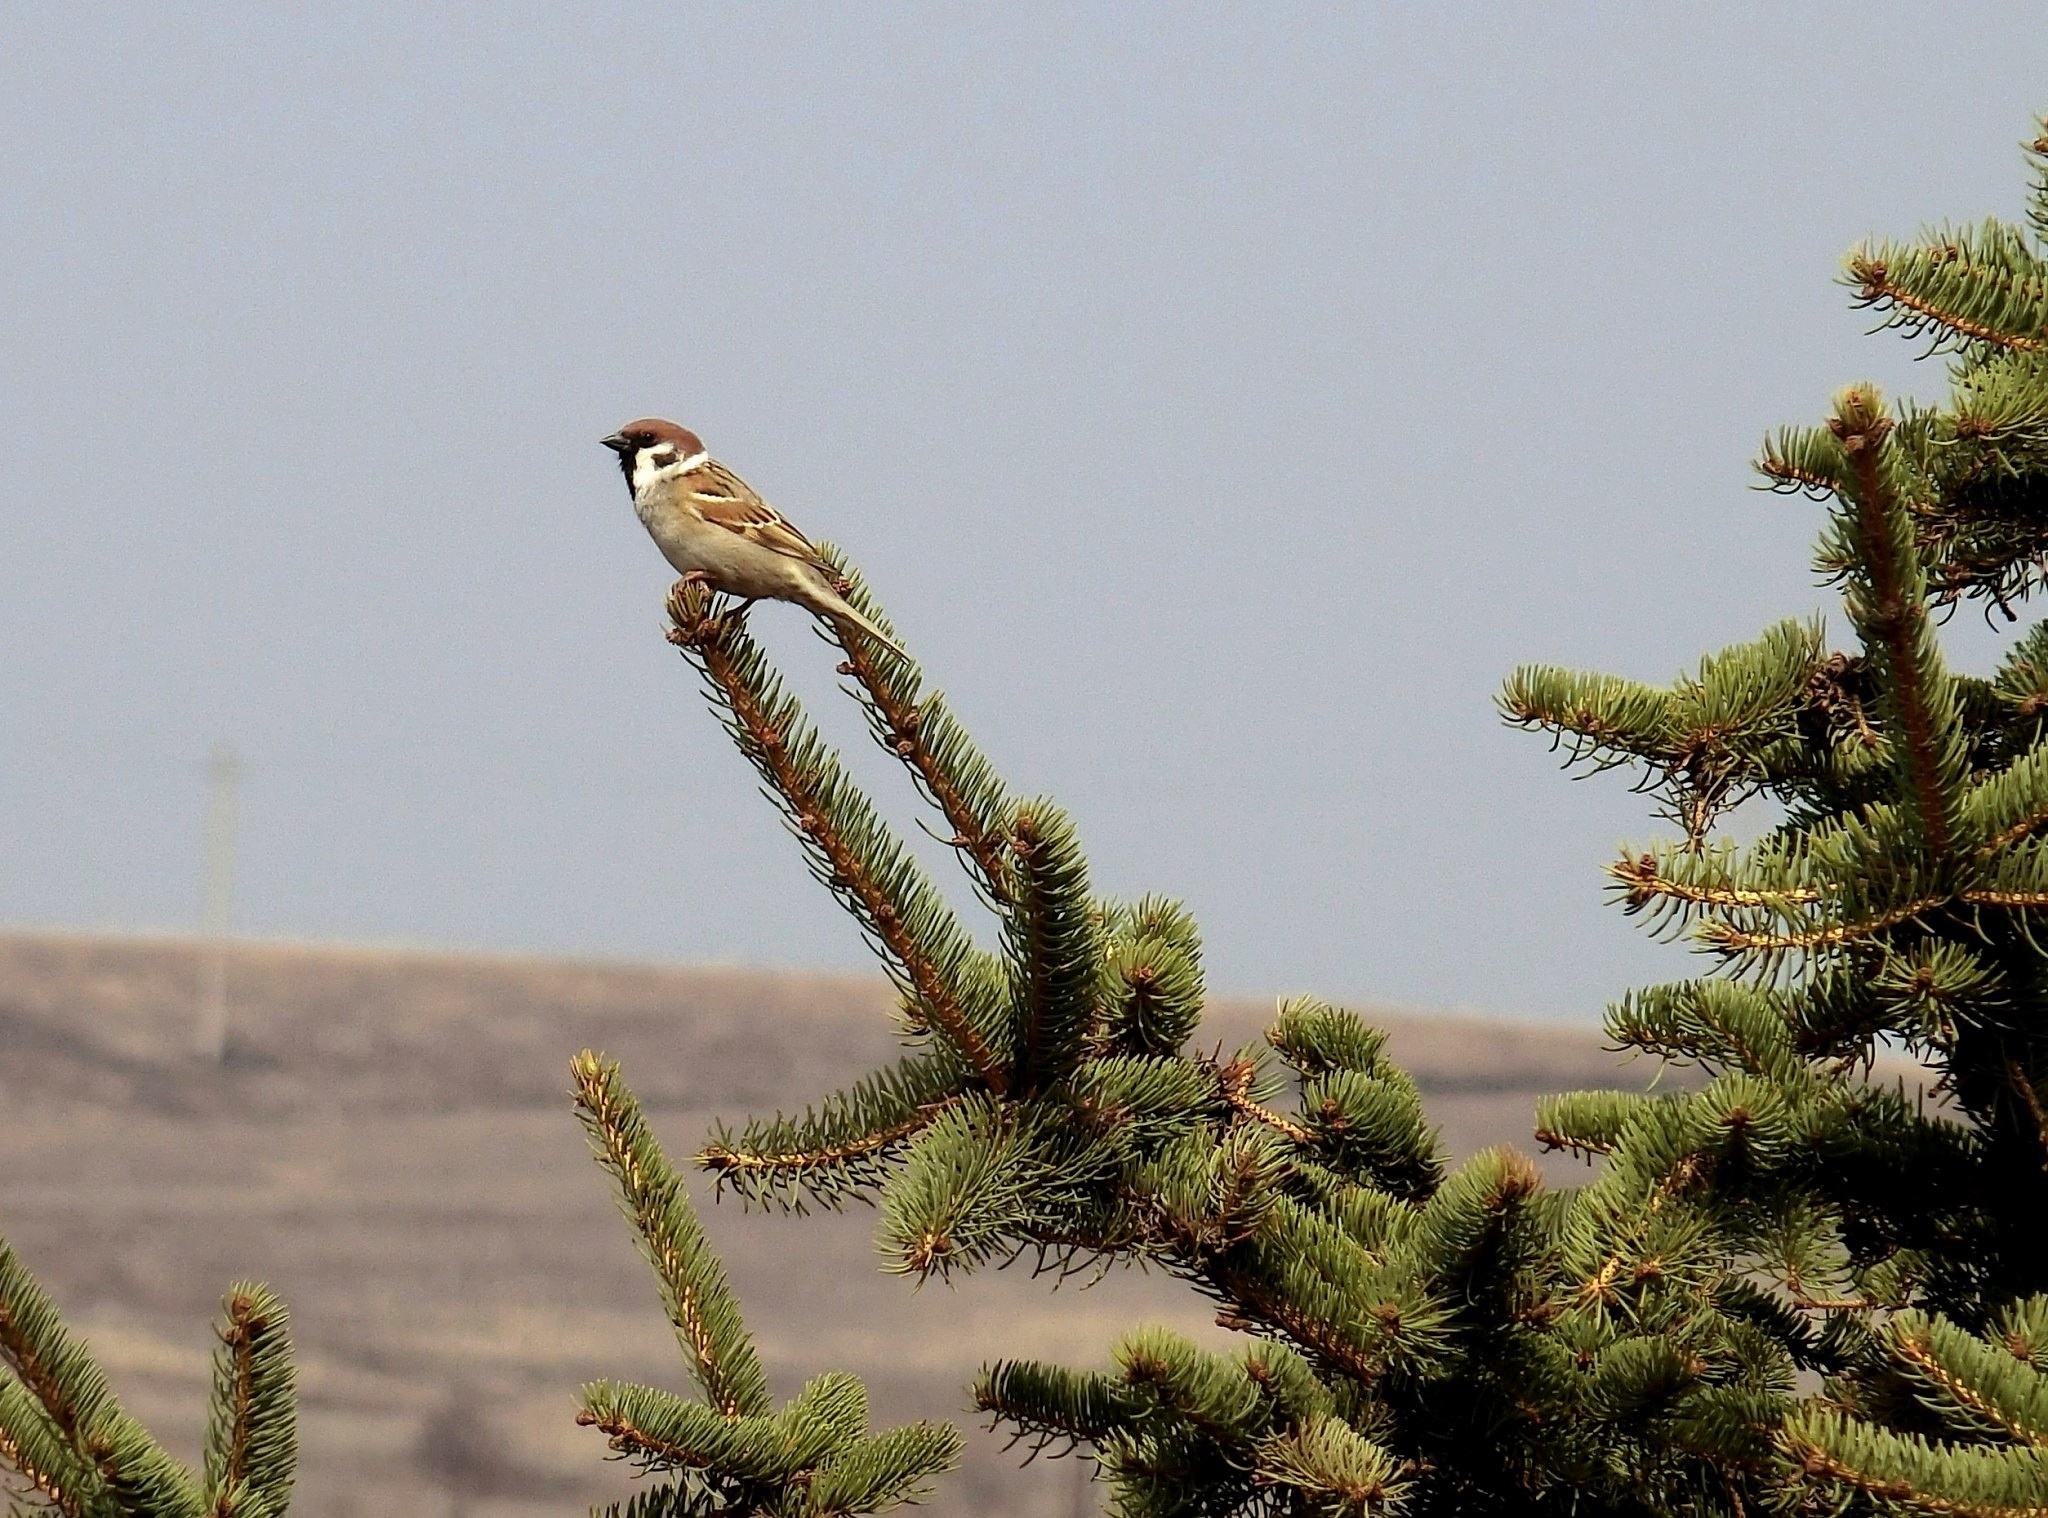 Lone sparrow, NE China countryside by pop88123